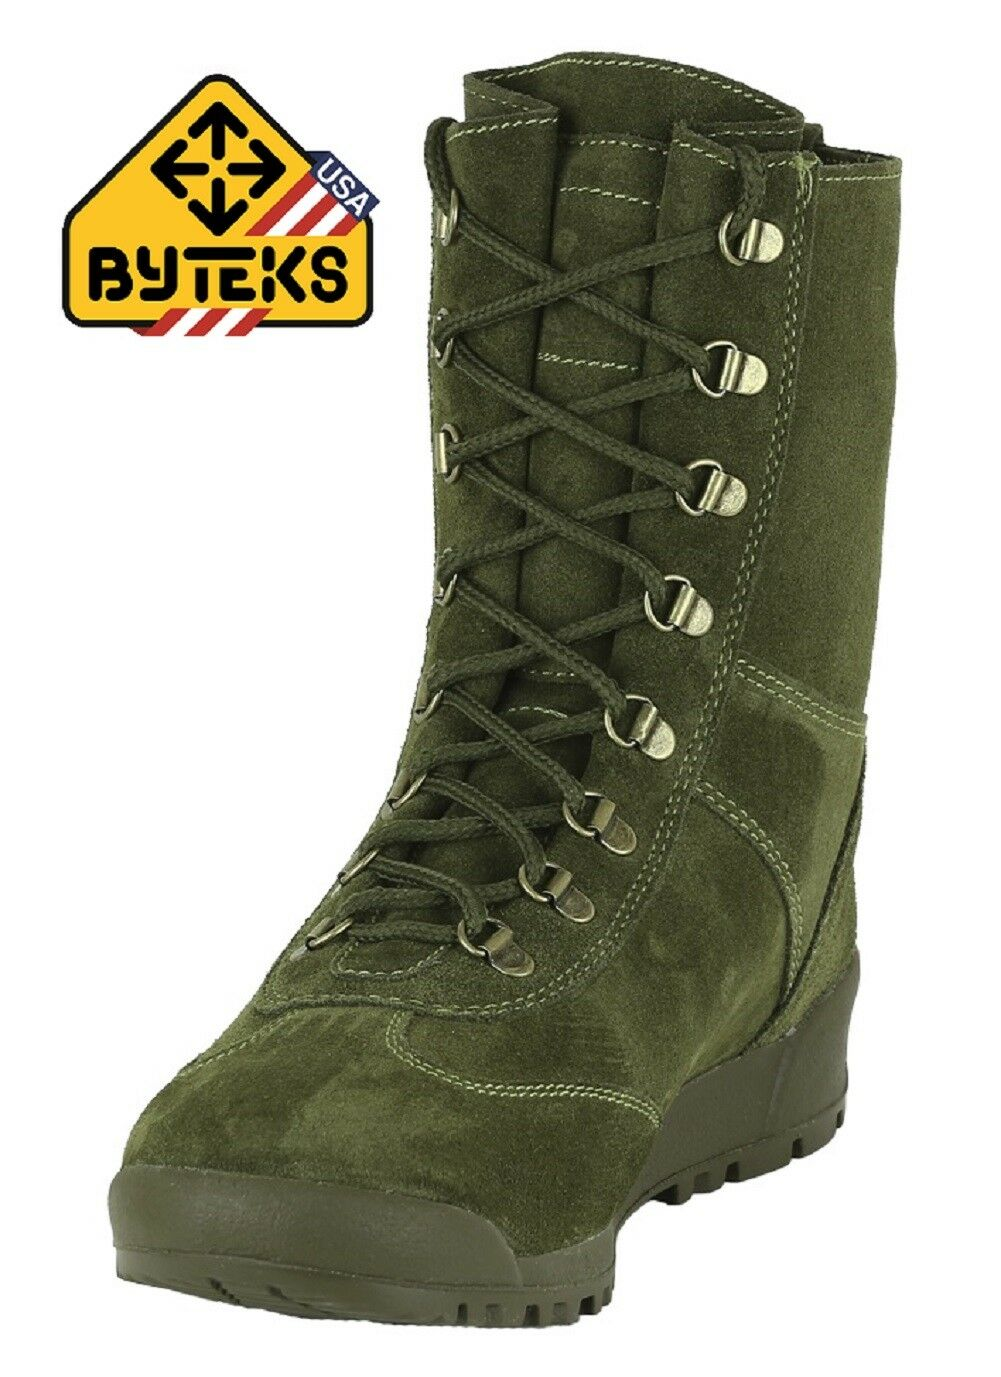 Authentic Soviet SpetsNaz Assault Tactical Stiefel    COBRA 12031  by BYTEKS a4e936